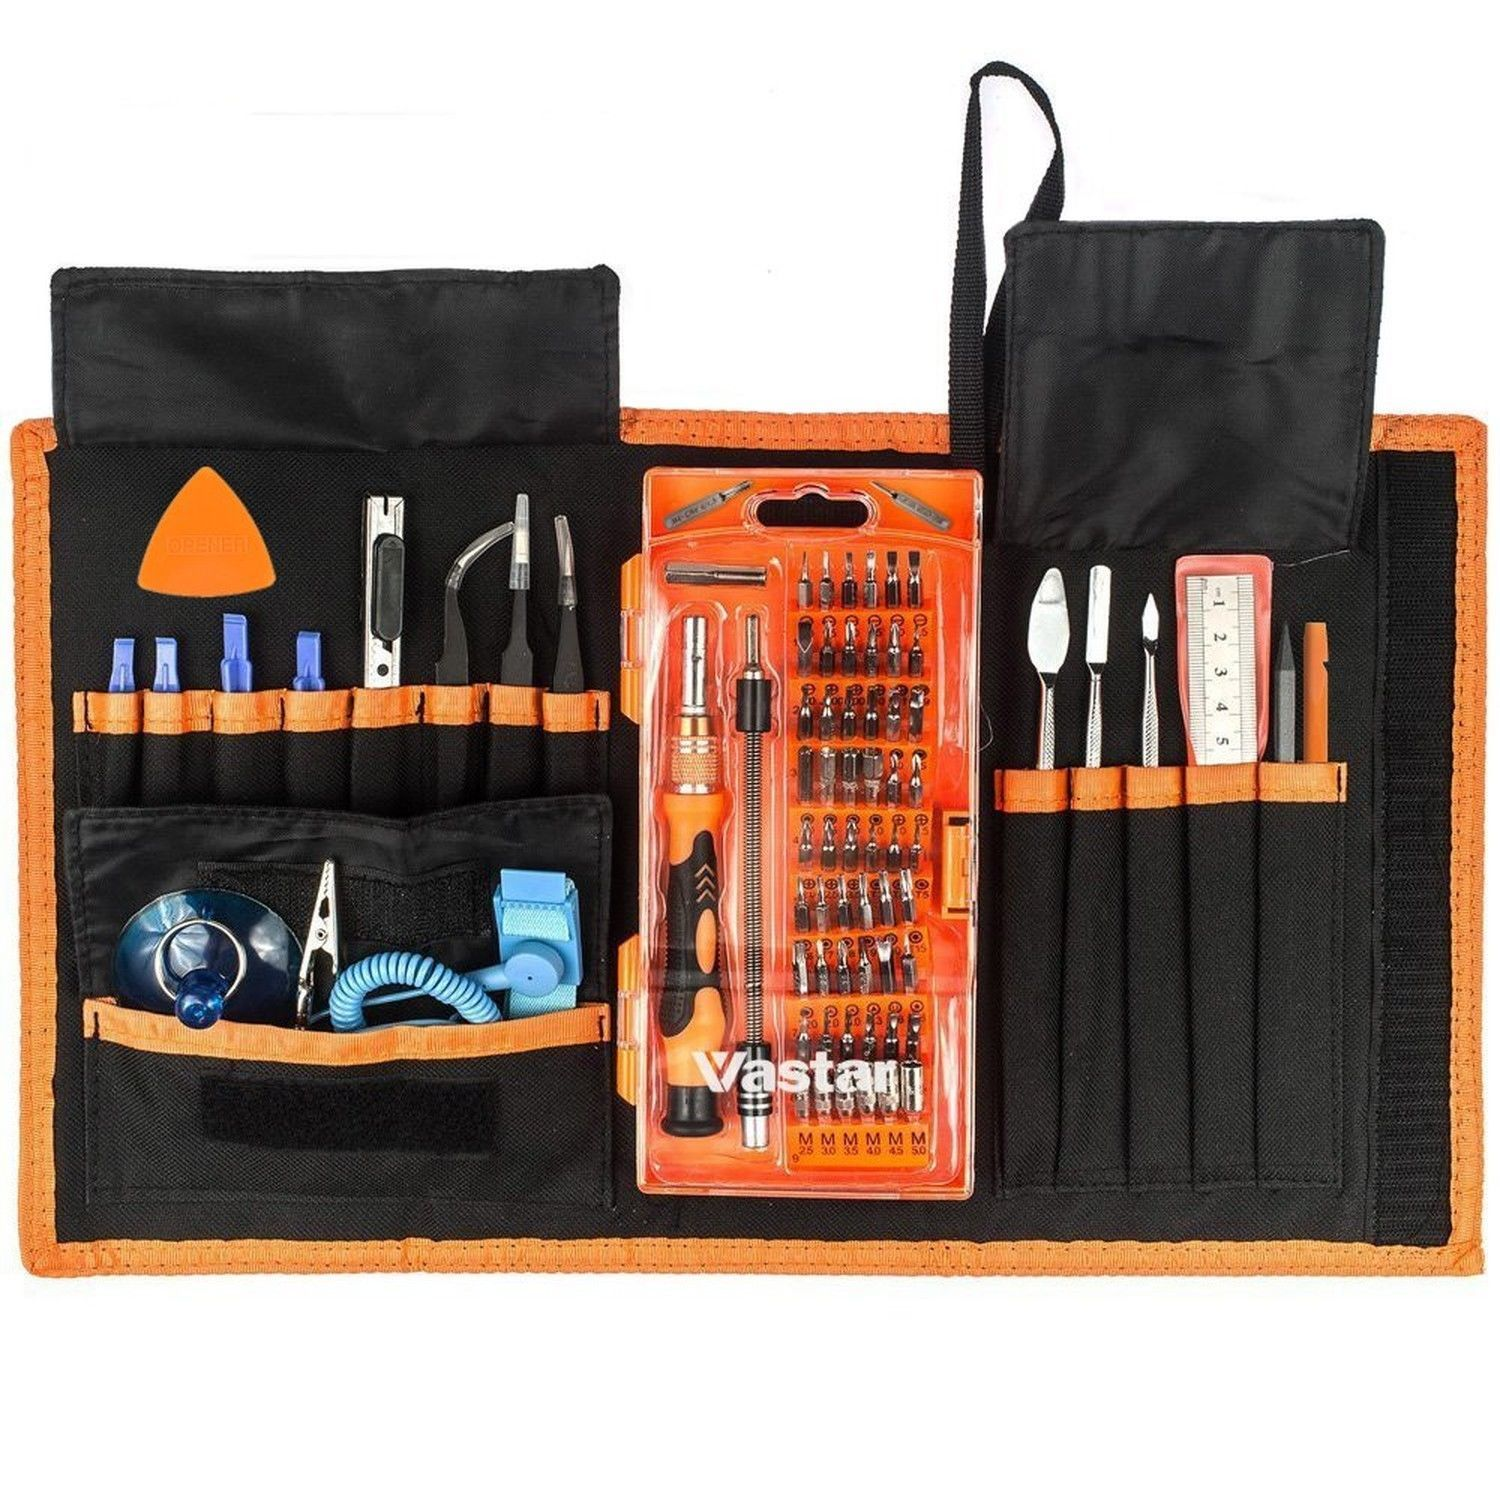 This Repair Tool package will go with you to repair